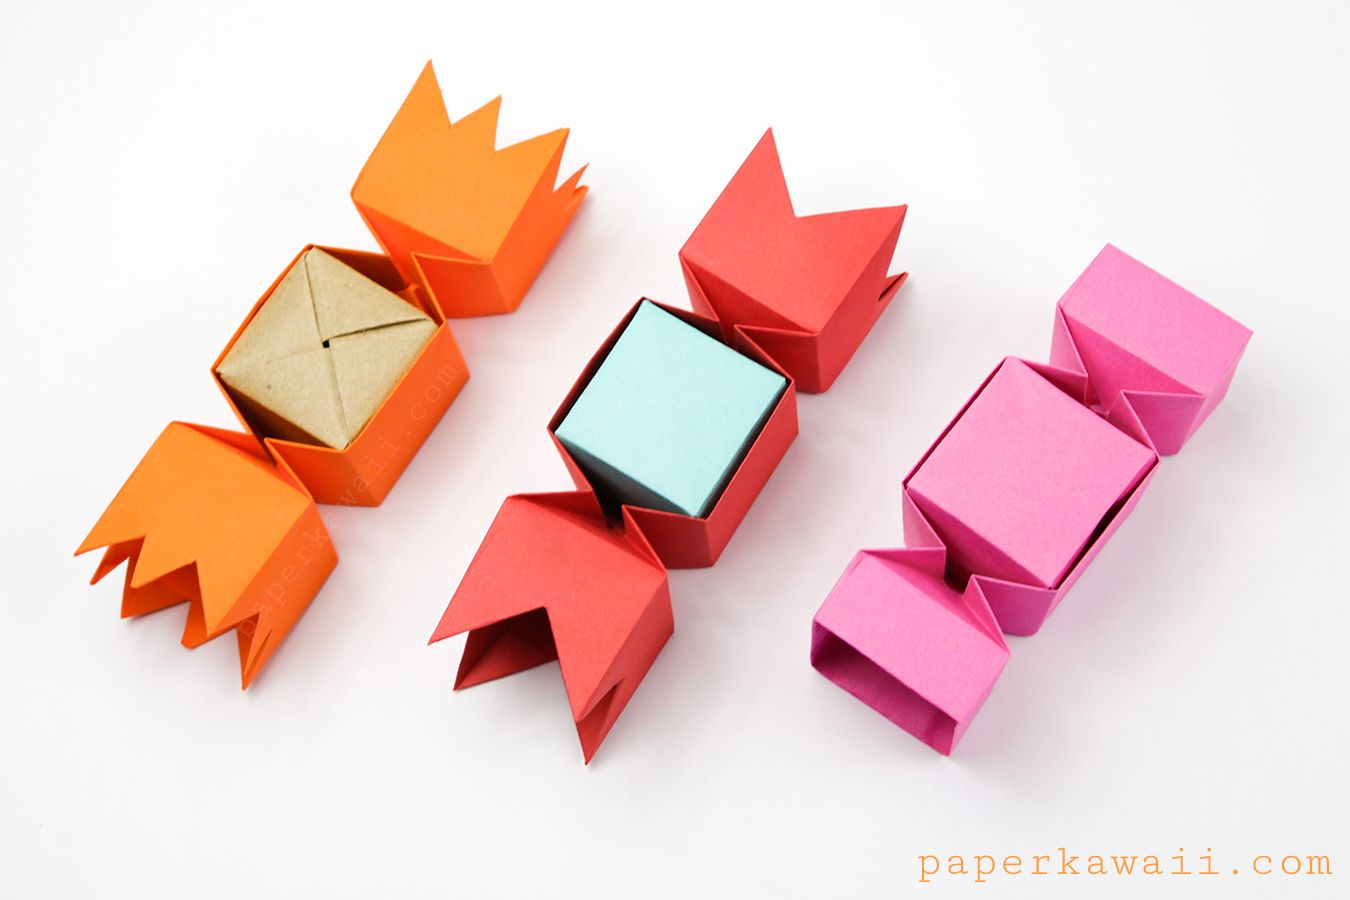 Square Origami Candy Box Instructions Paper Kawaii Origami Candy Box Origami Gift Box Origami Candy